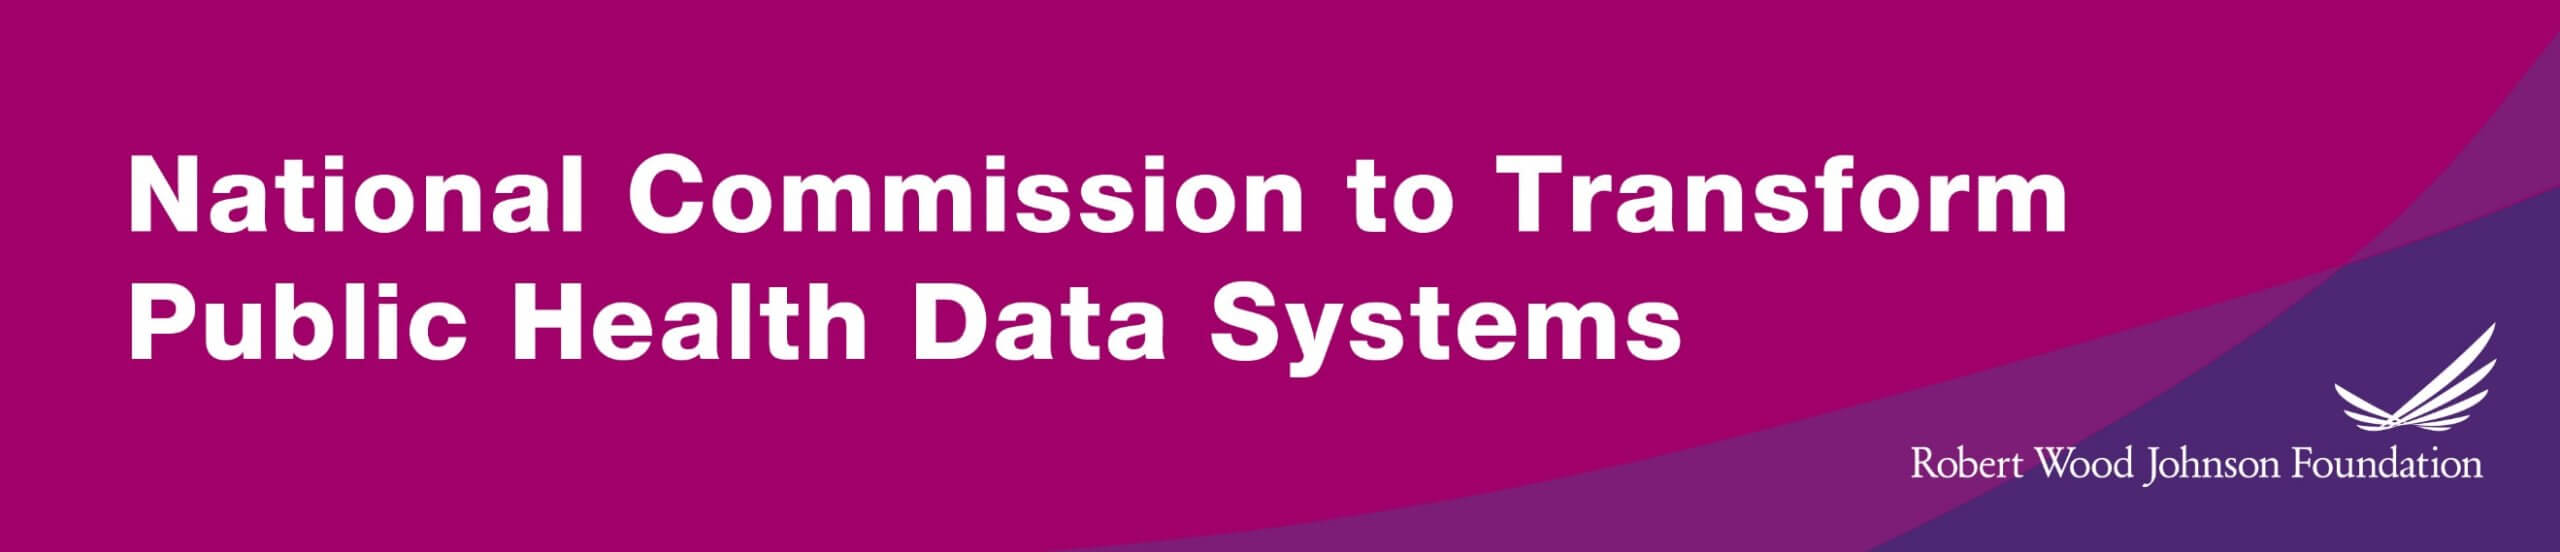 National Commission to Transform Public Health Data Systems Releases Report